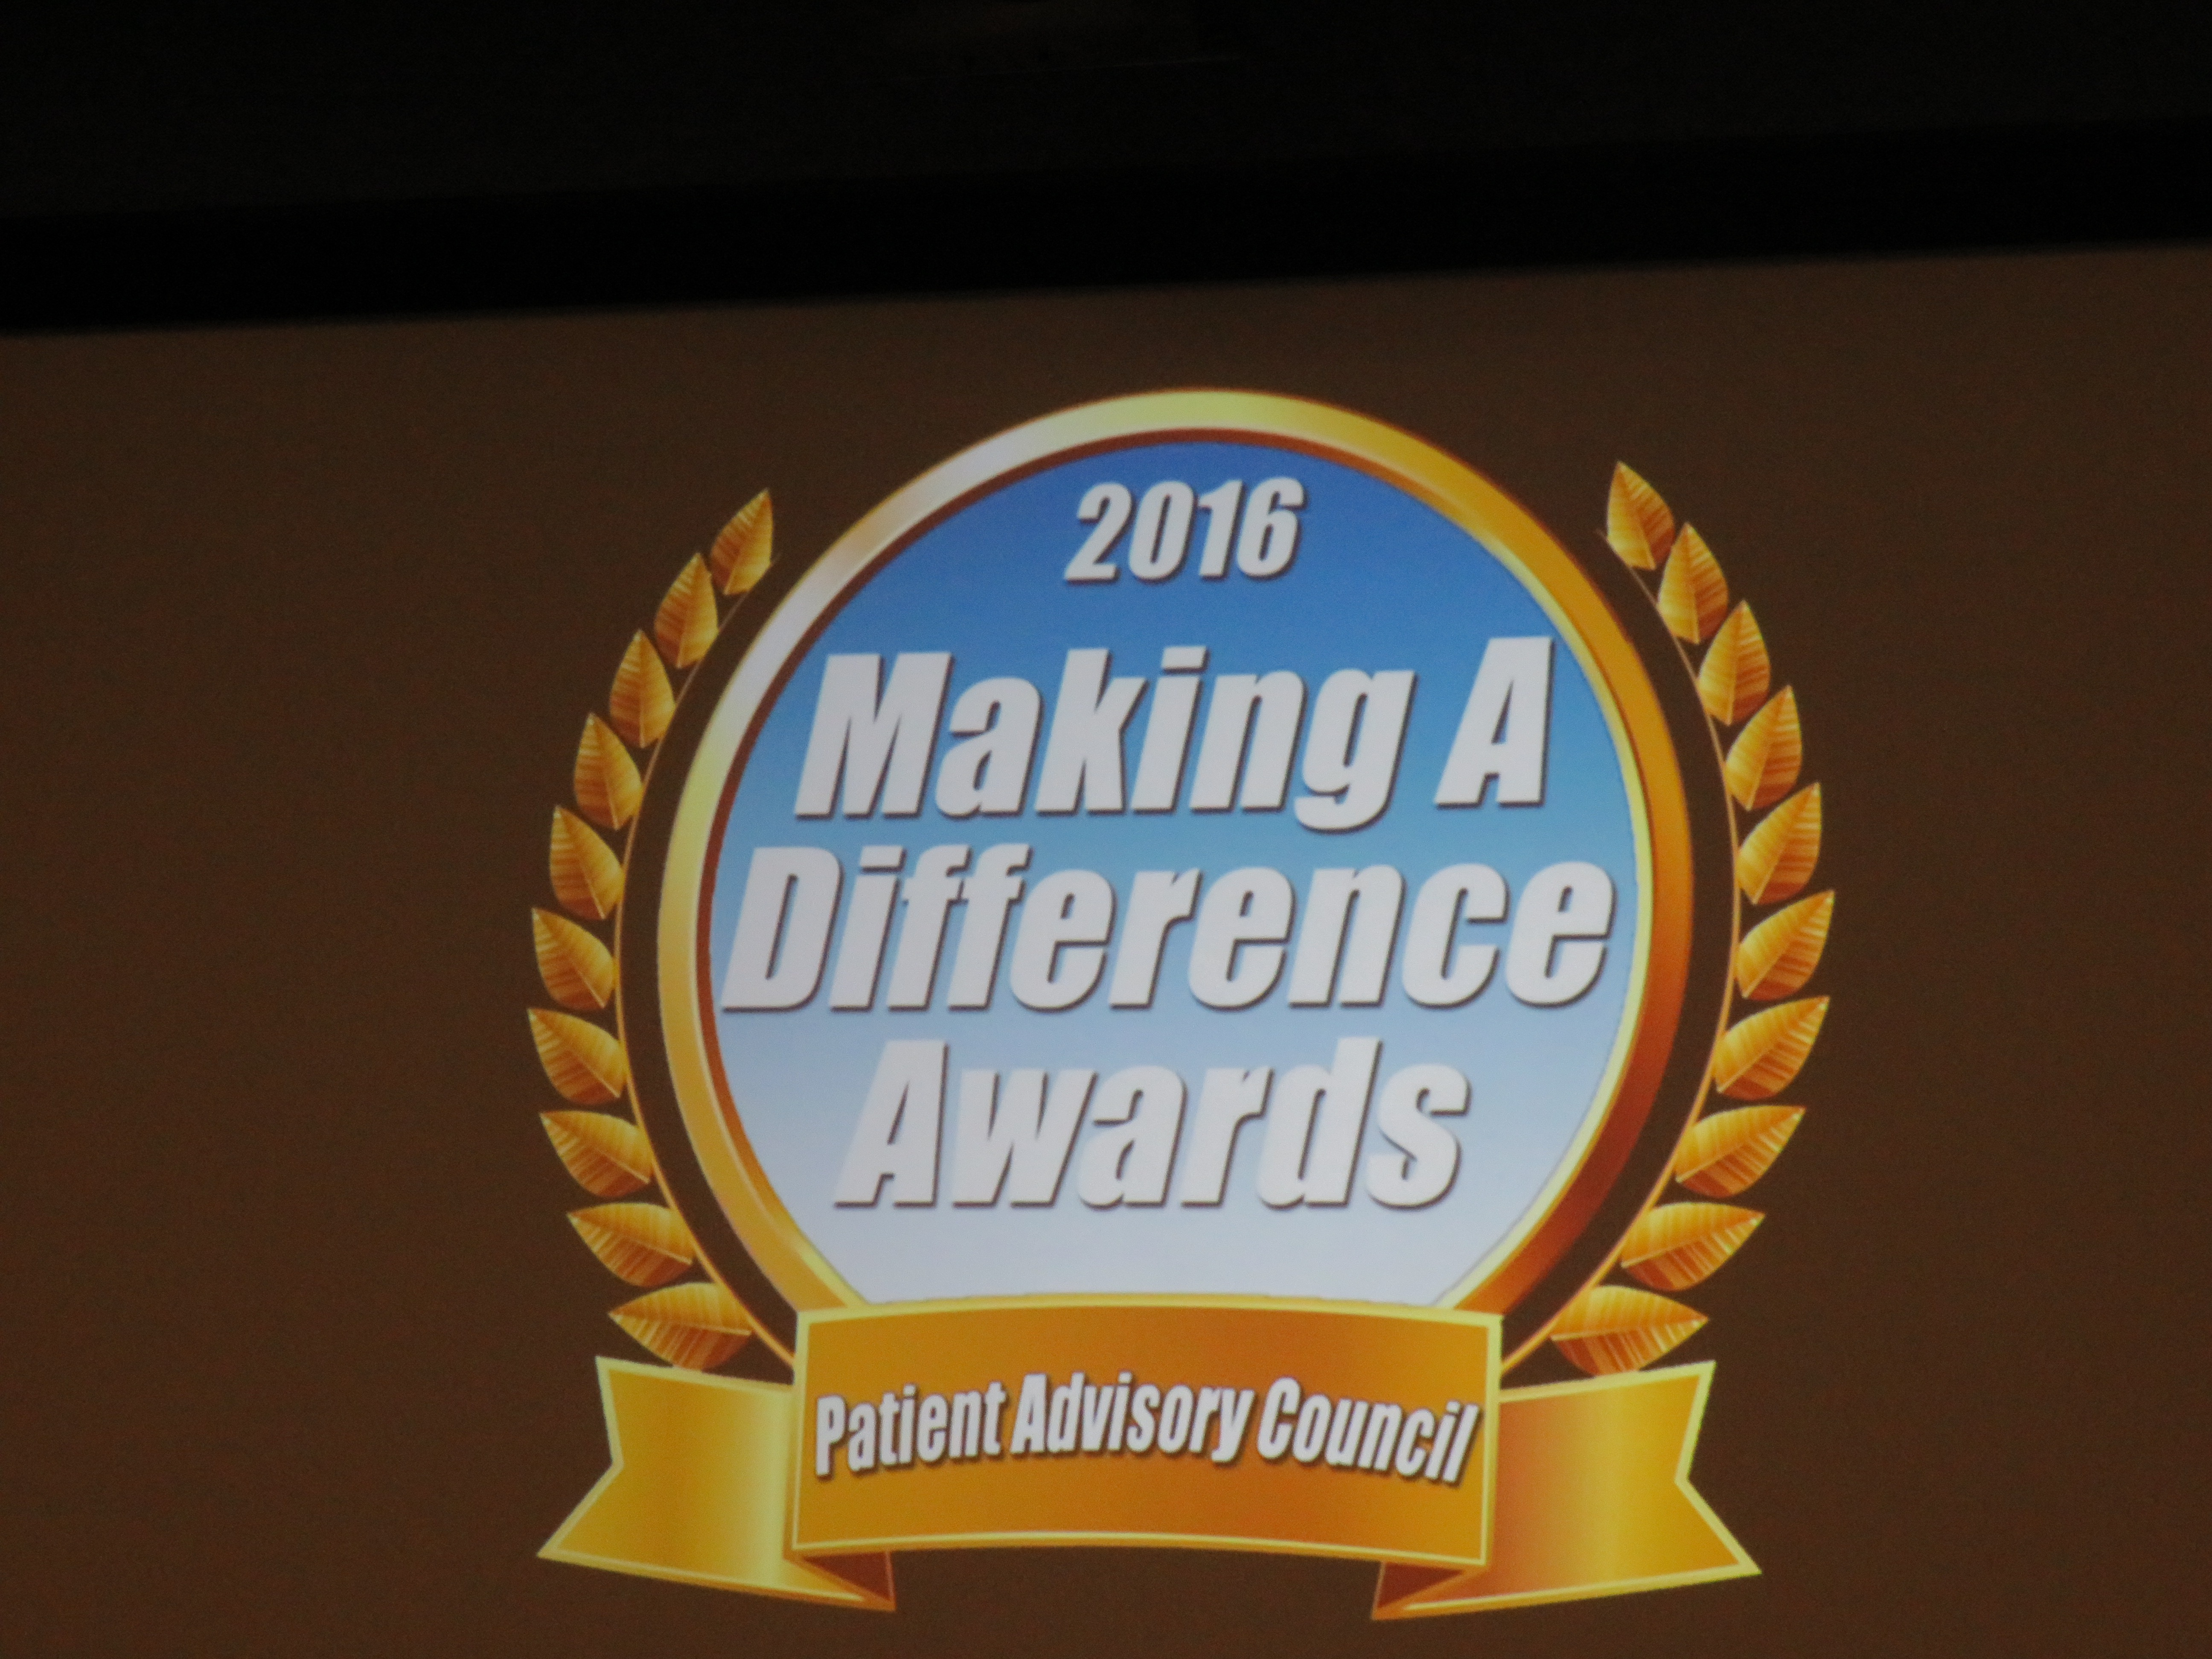 2016 Making a Difference Awards